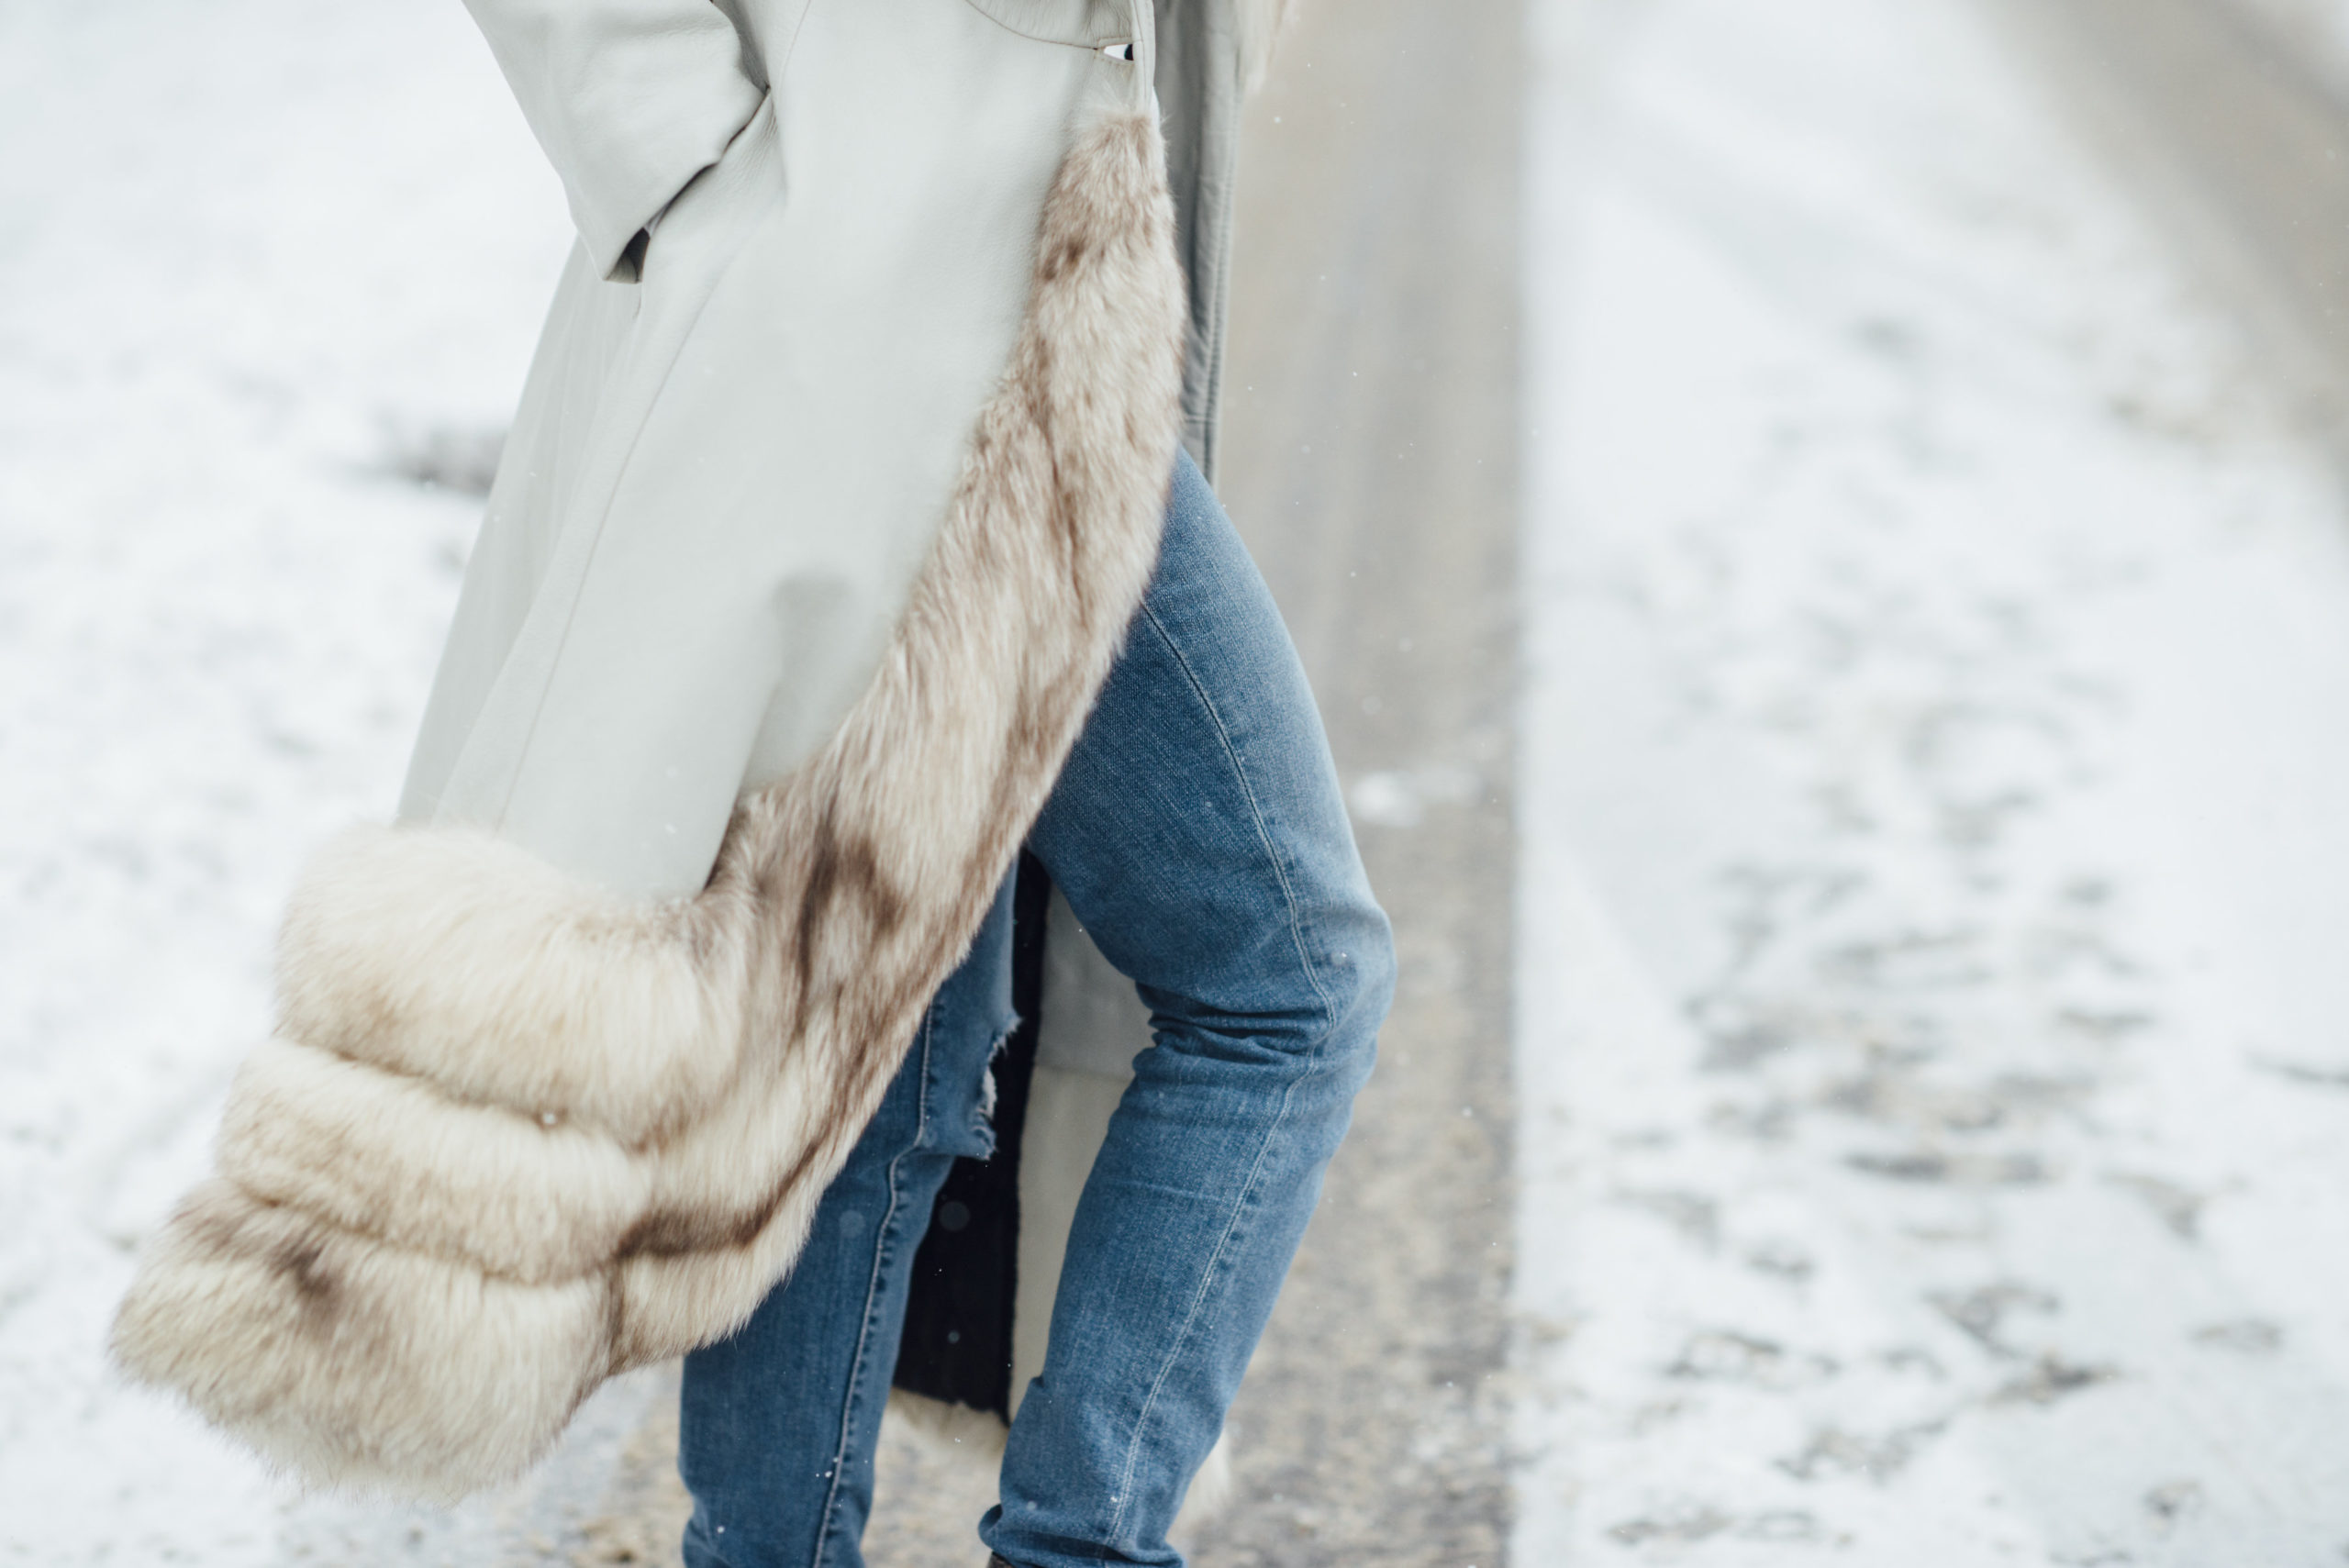 how to stay truly warm and look chic all winter, how to stay warm and chic in cold weather, cold weather styling hacks, winter styling tricks you need to know, must know winter styling tips, slow fashion, stay stylish during cold weather